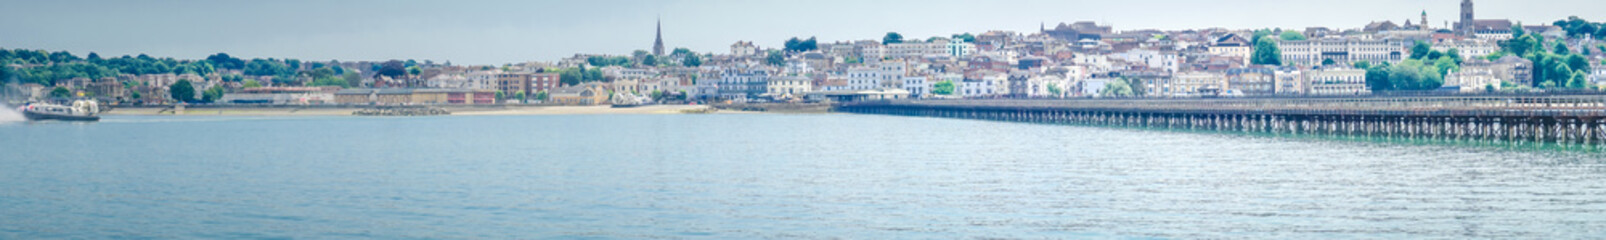 Panoramic view from the sea on the town of Ryde on the Isle of Wight in Great Britain. © Martina